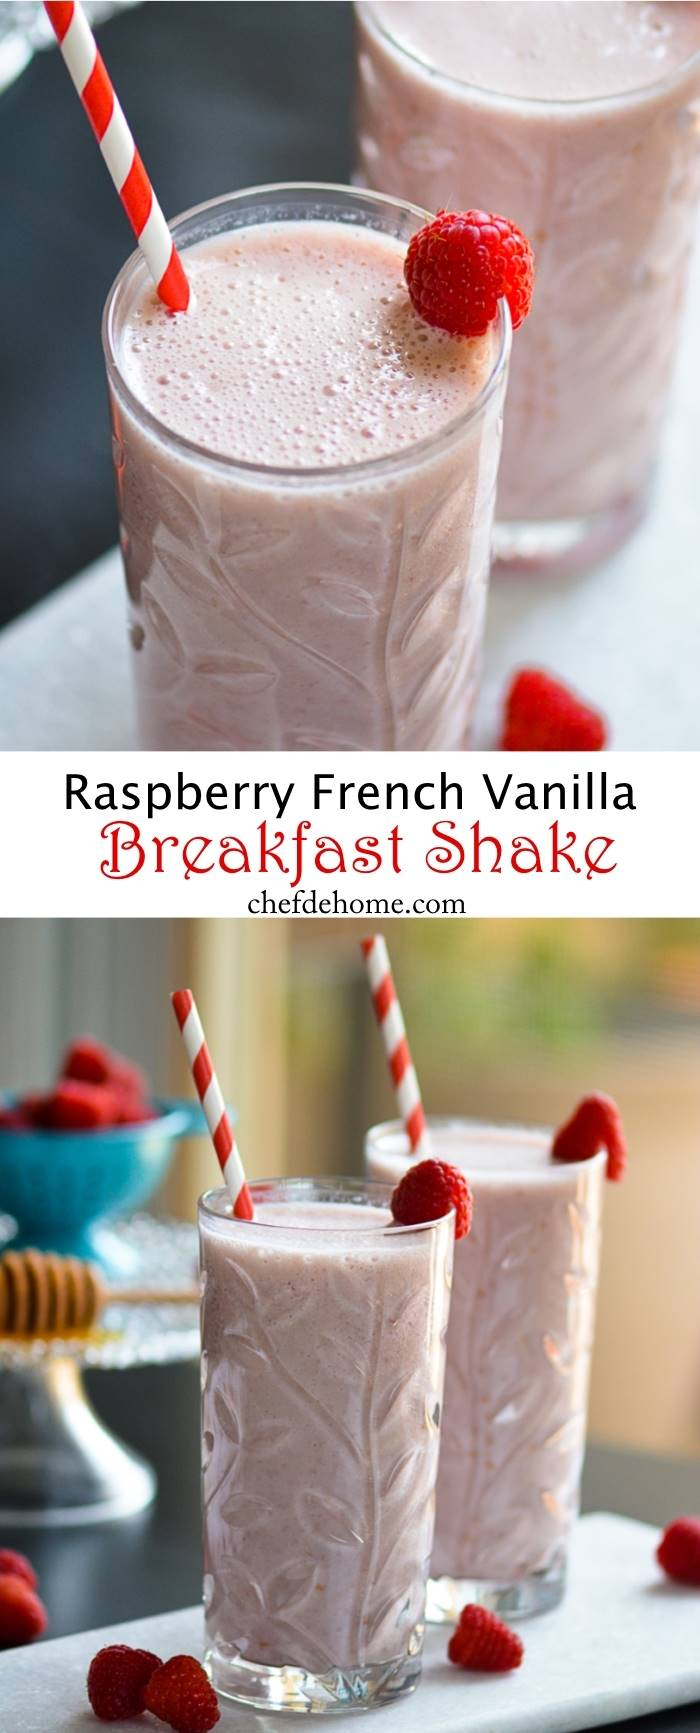 Raspberry French Vanilla Carnation Breakfast Shake | chefdehome.com